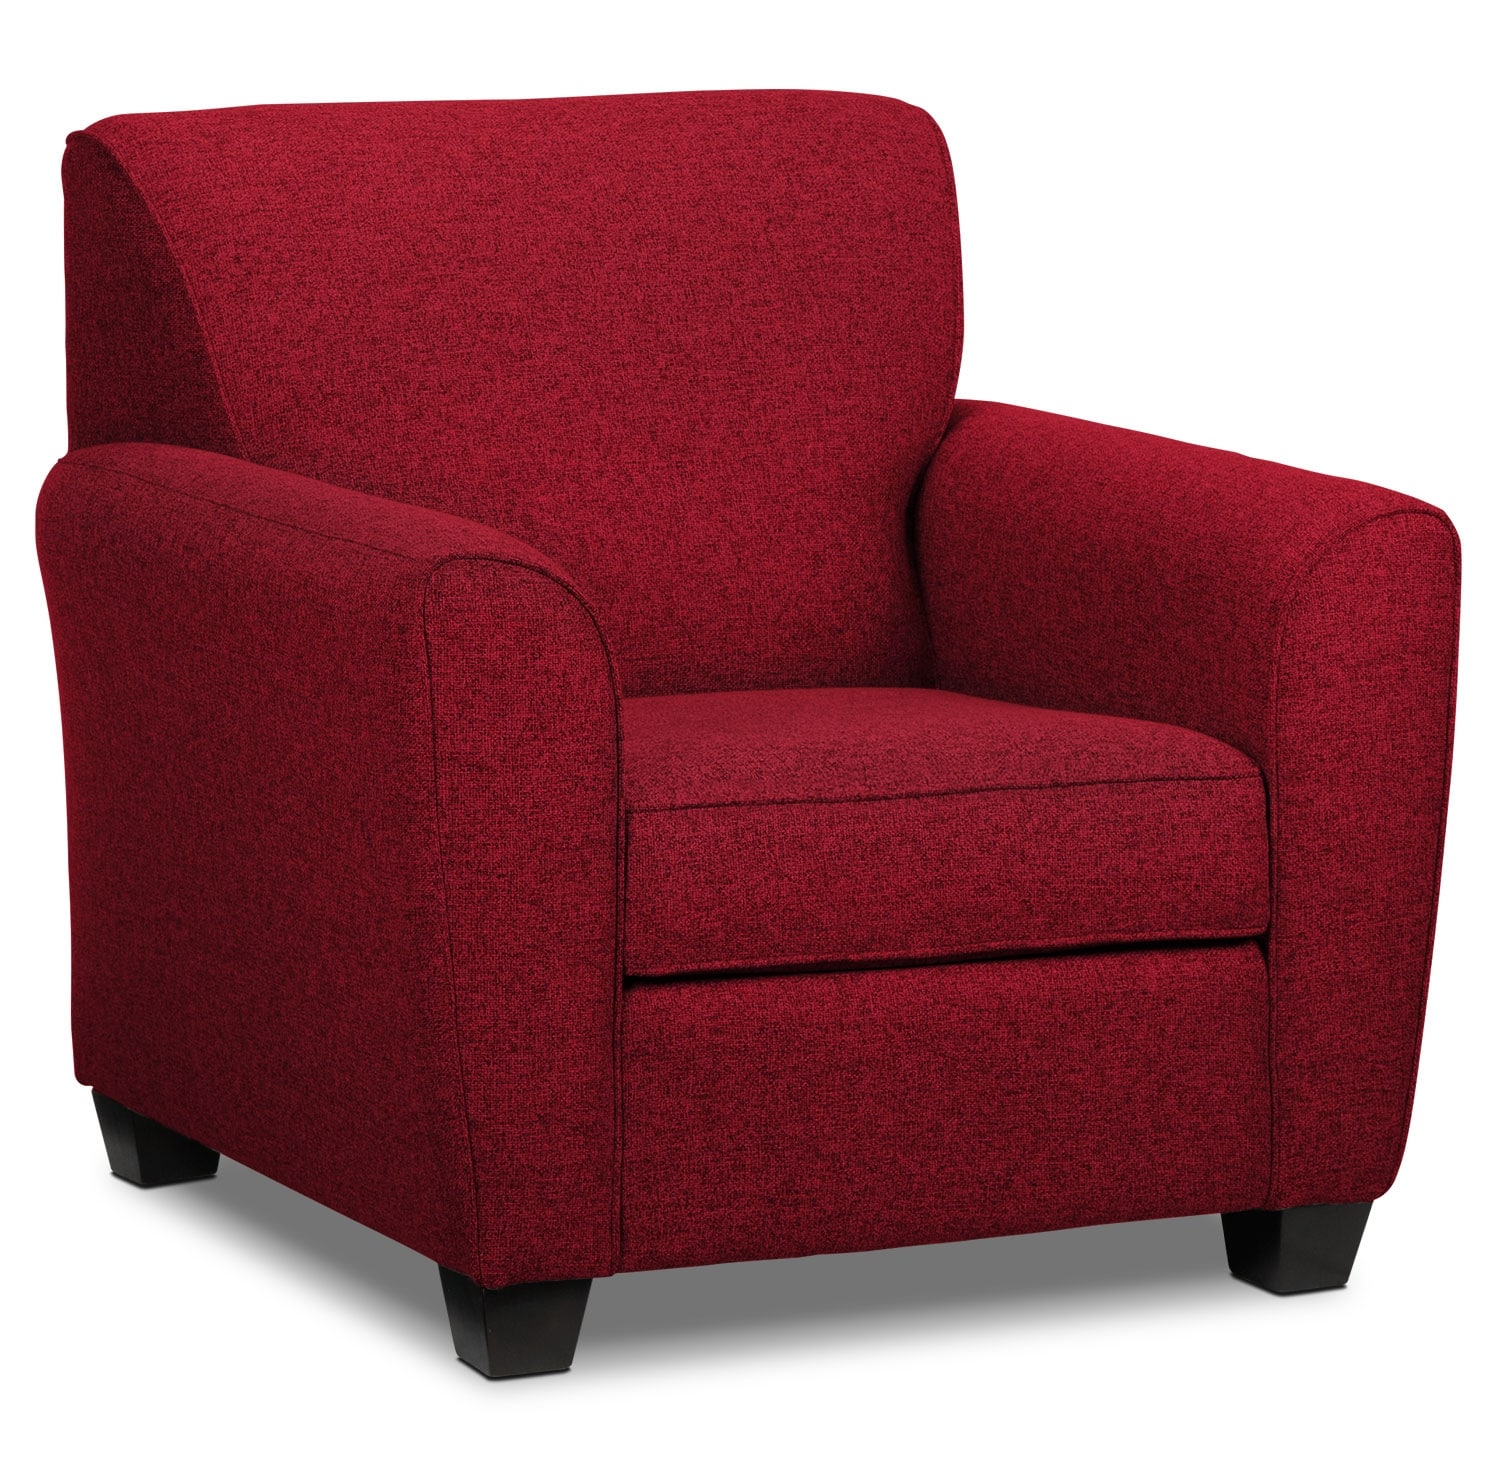 Leon S Furniture Sectional Sofas: Ashby Sofa - Red